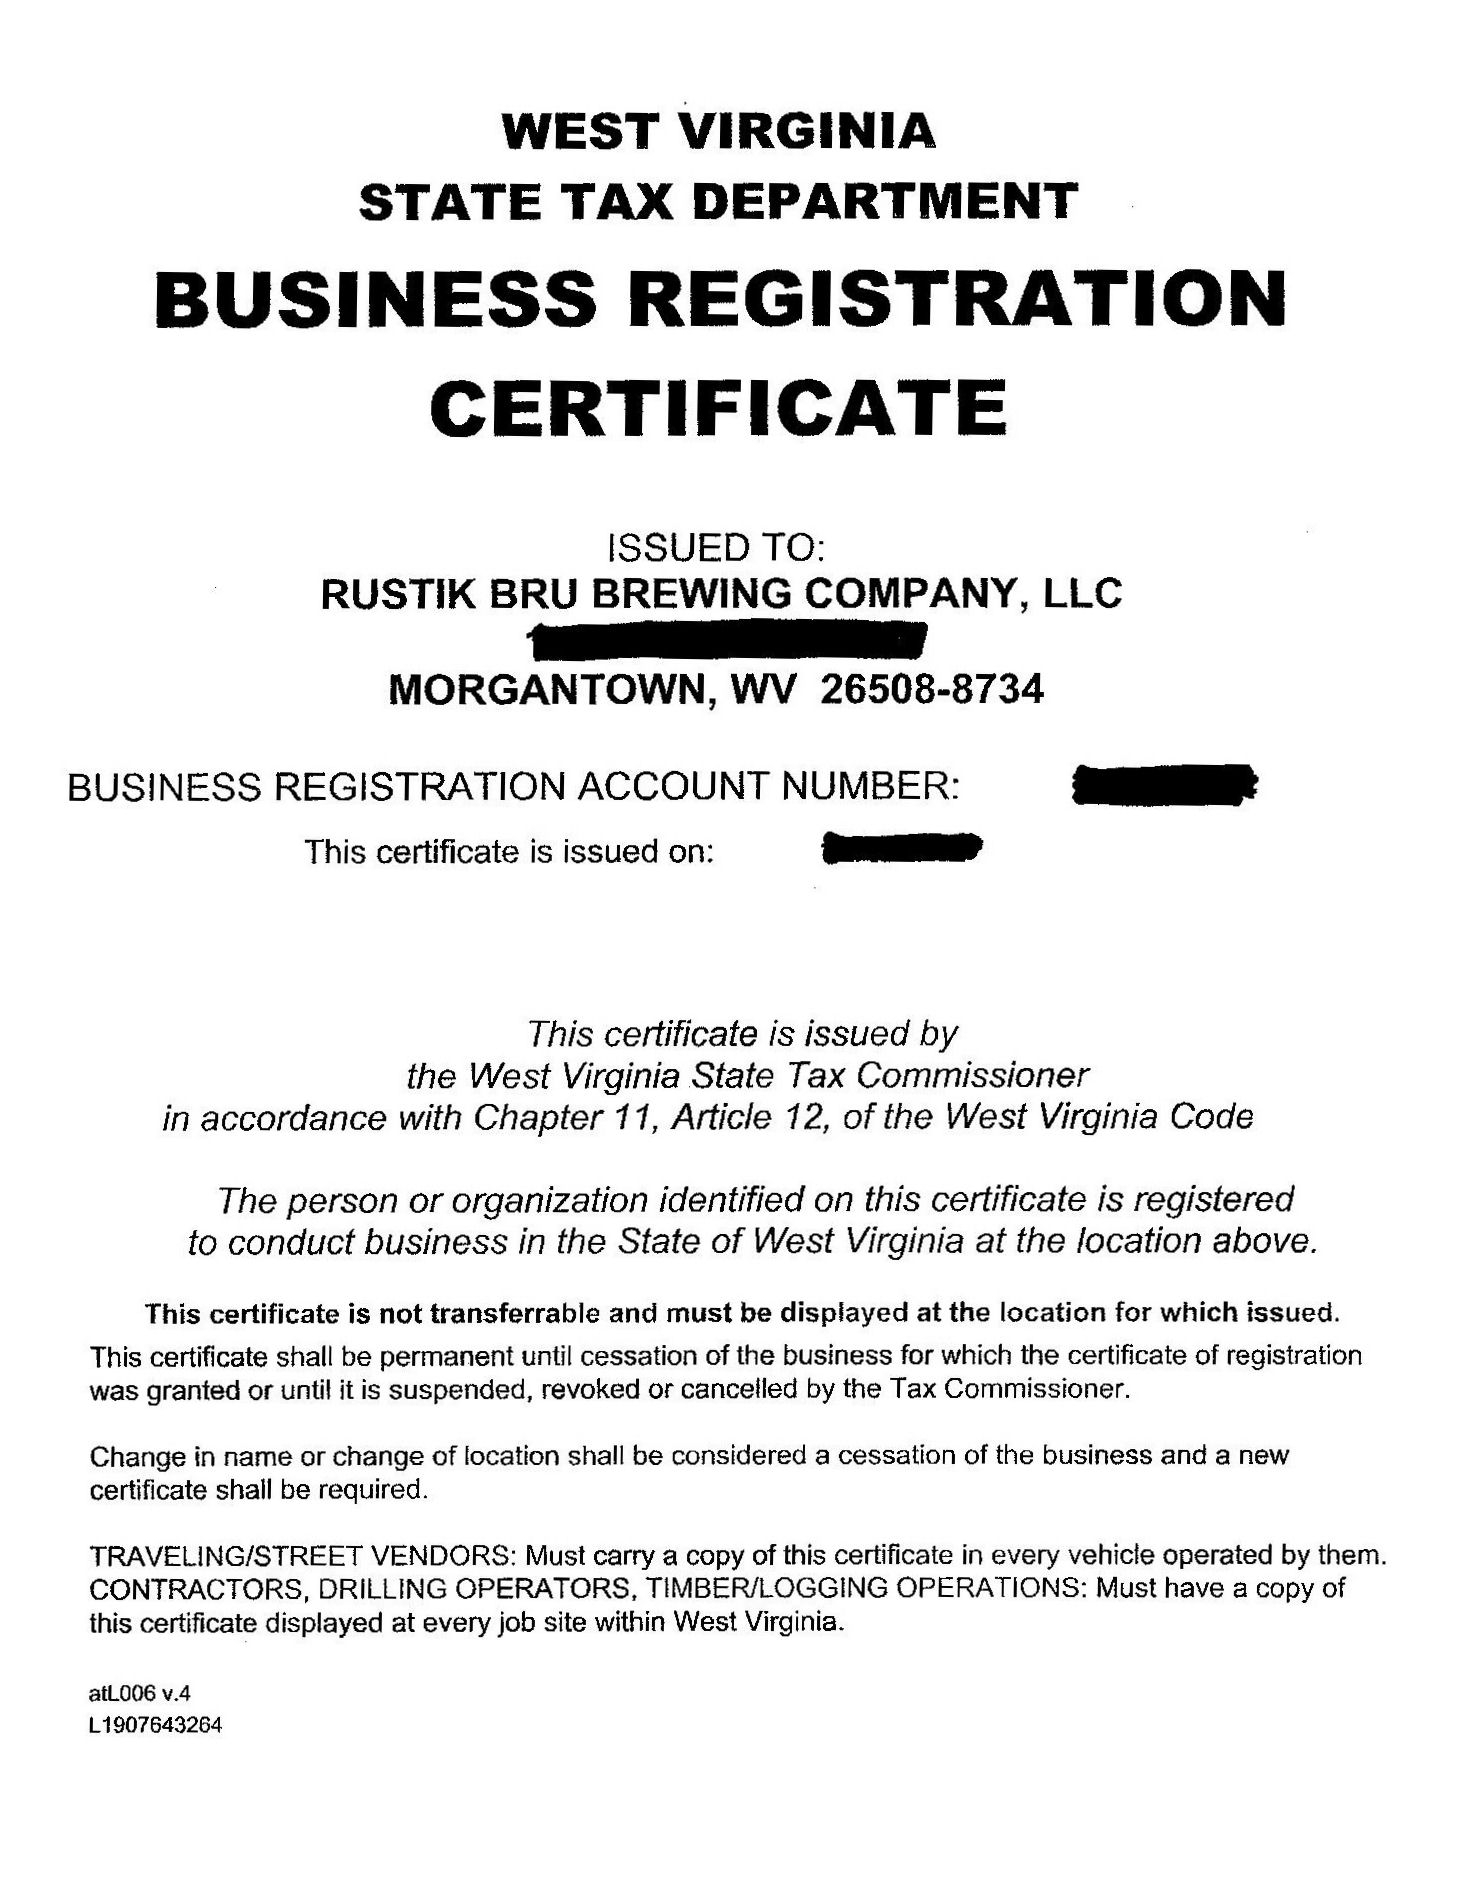 Business License And State Tax | Rustik Brü Blog – A Morgantown, Wv With Business Registration License